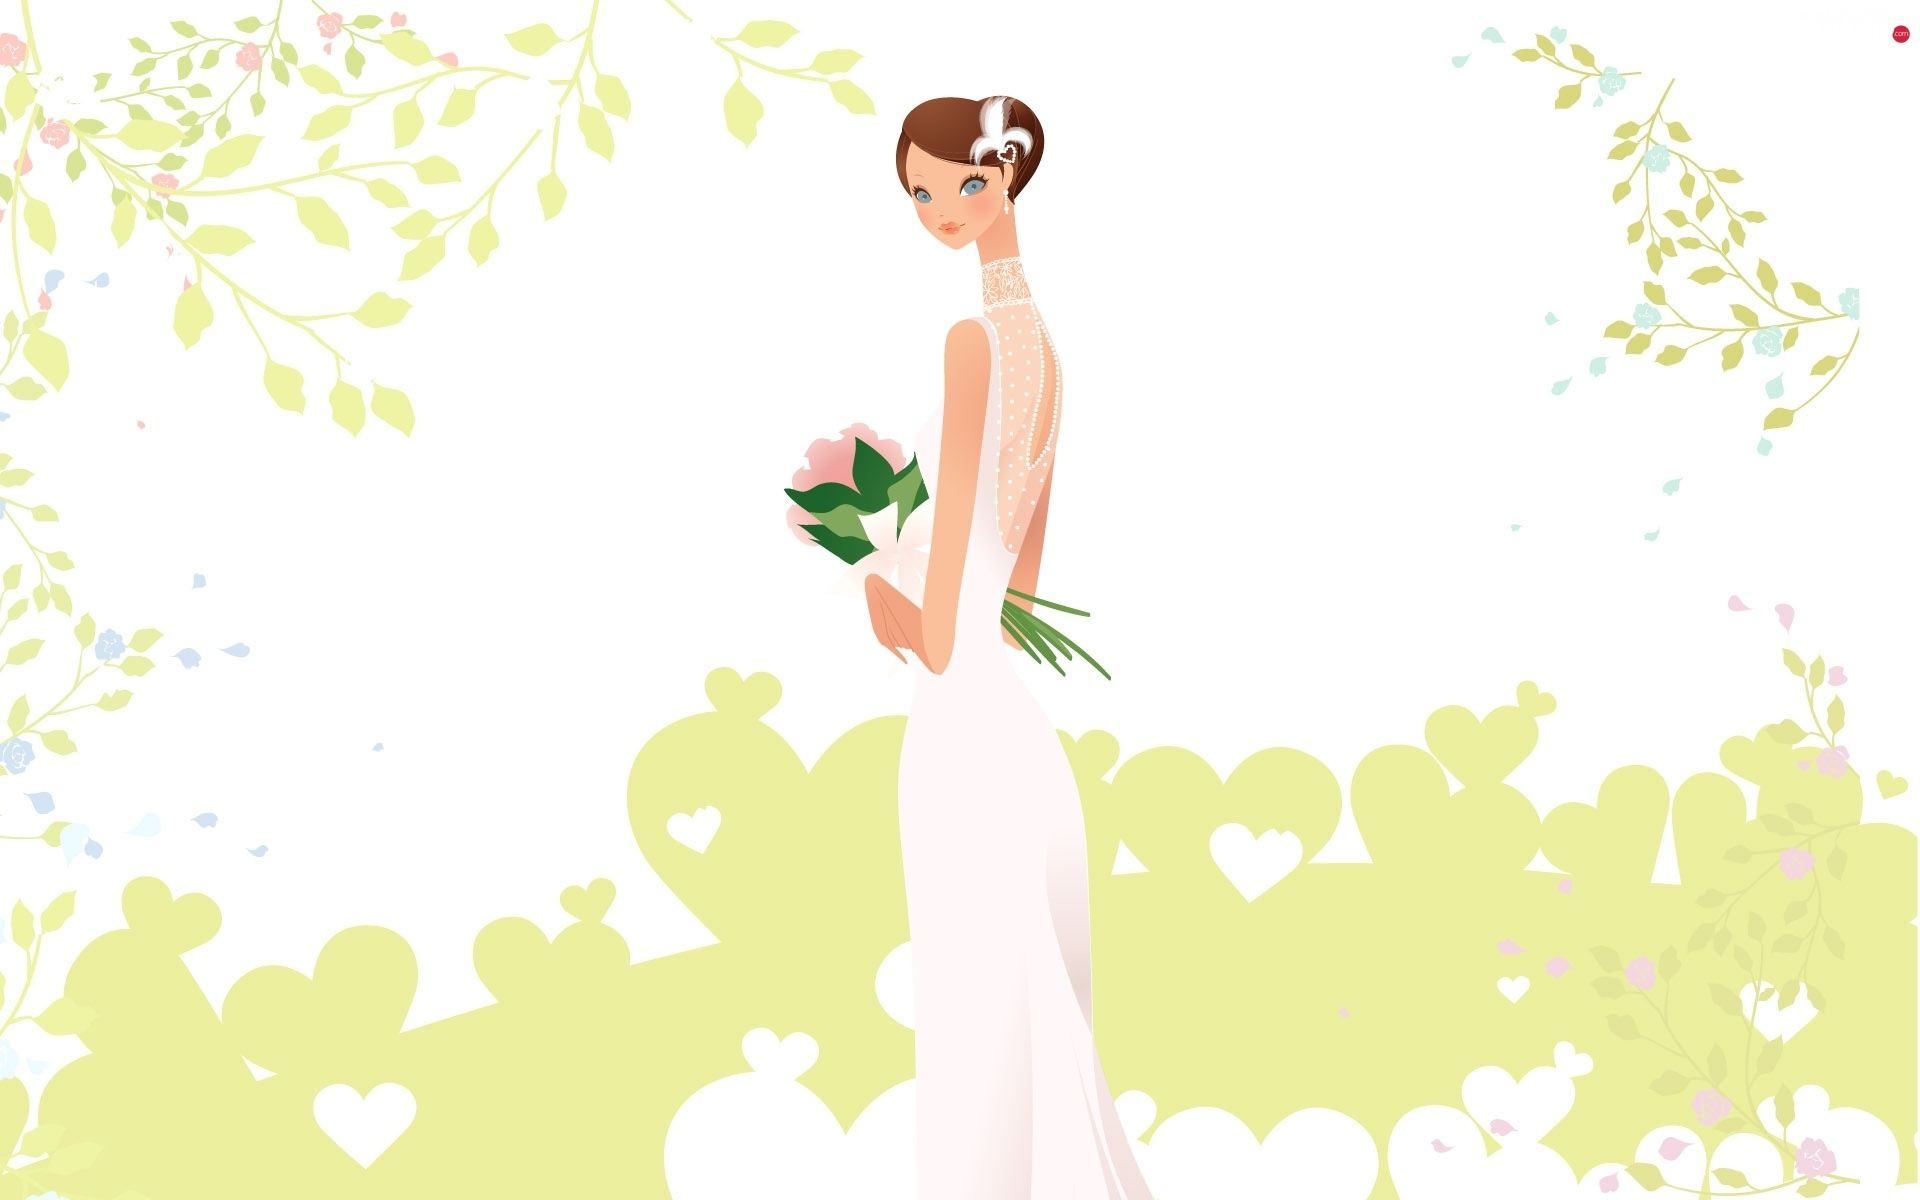 wedded, bouquet, lady, young